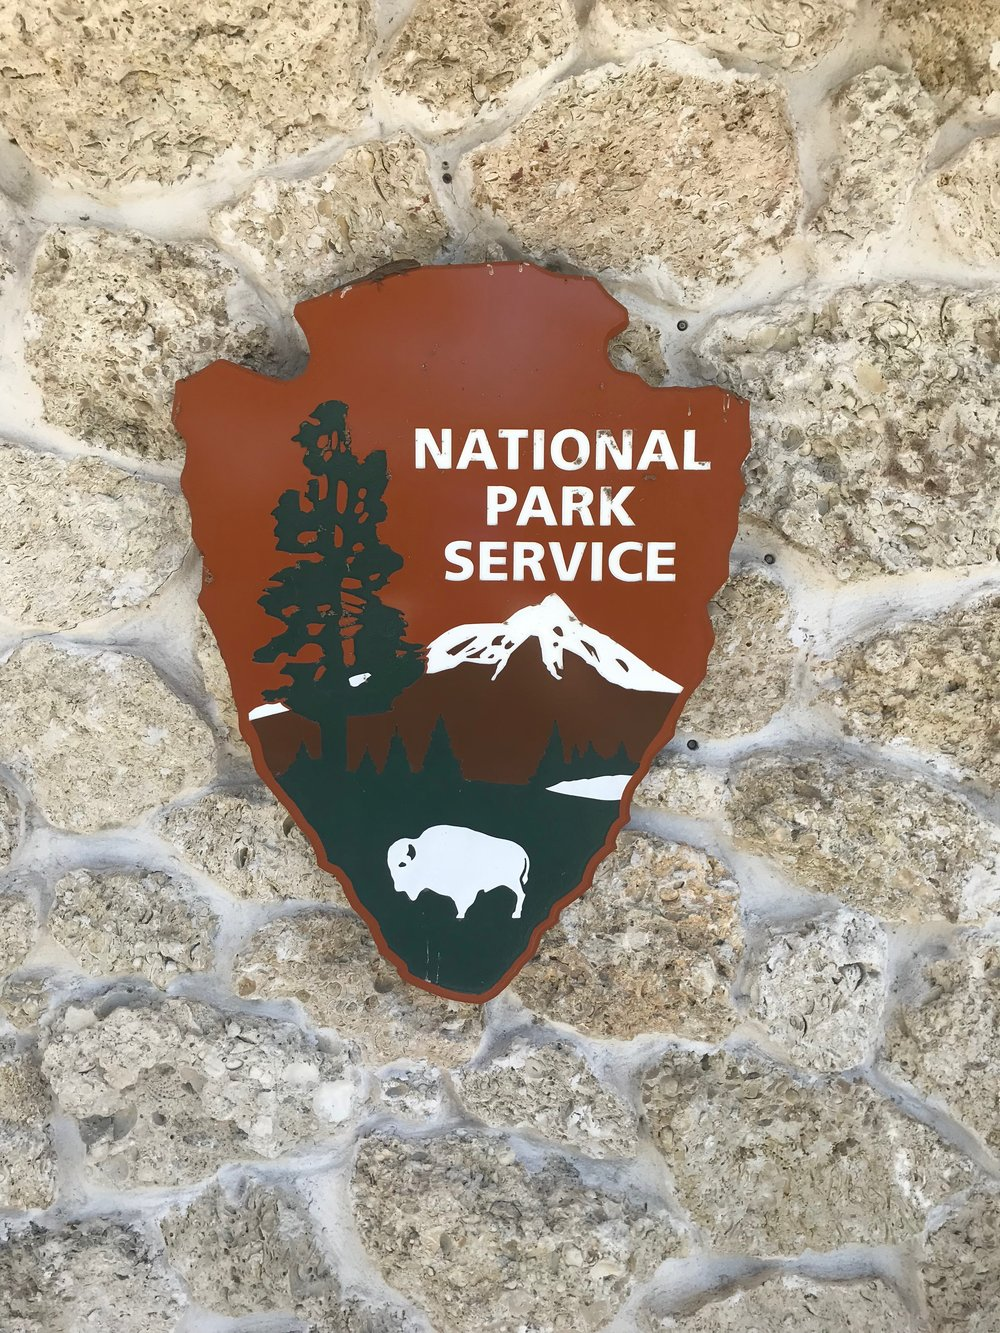 National Park Service Not Just For Parks The Leisurely Campers